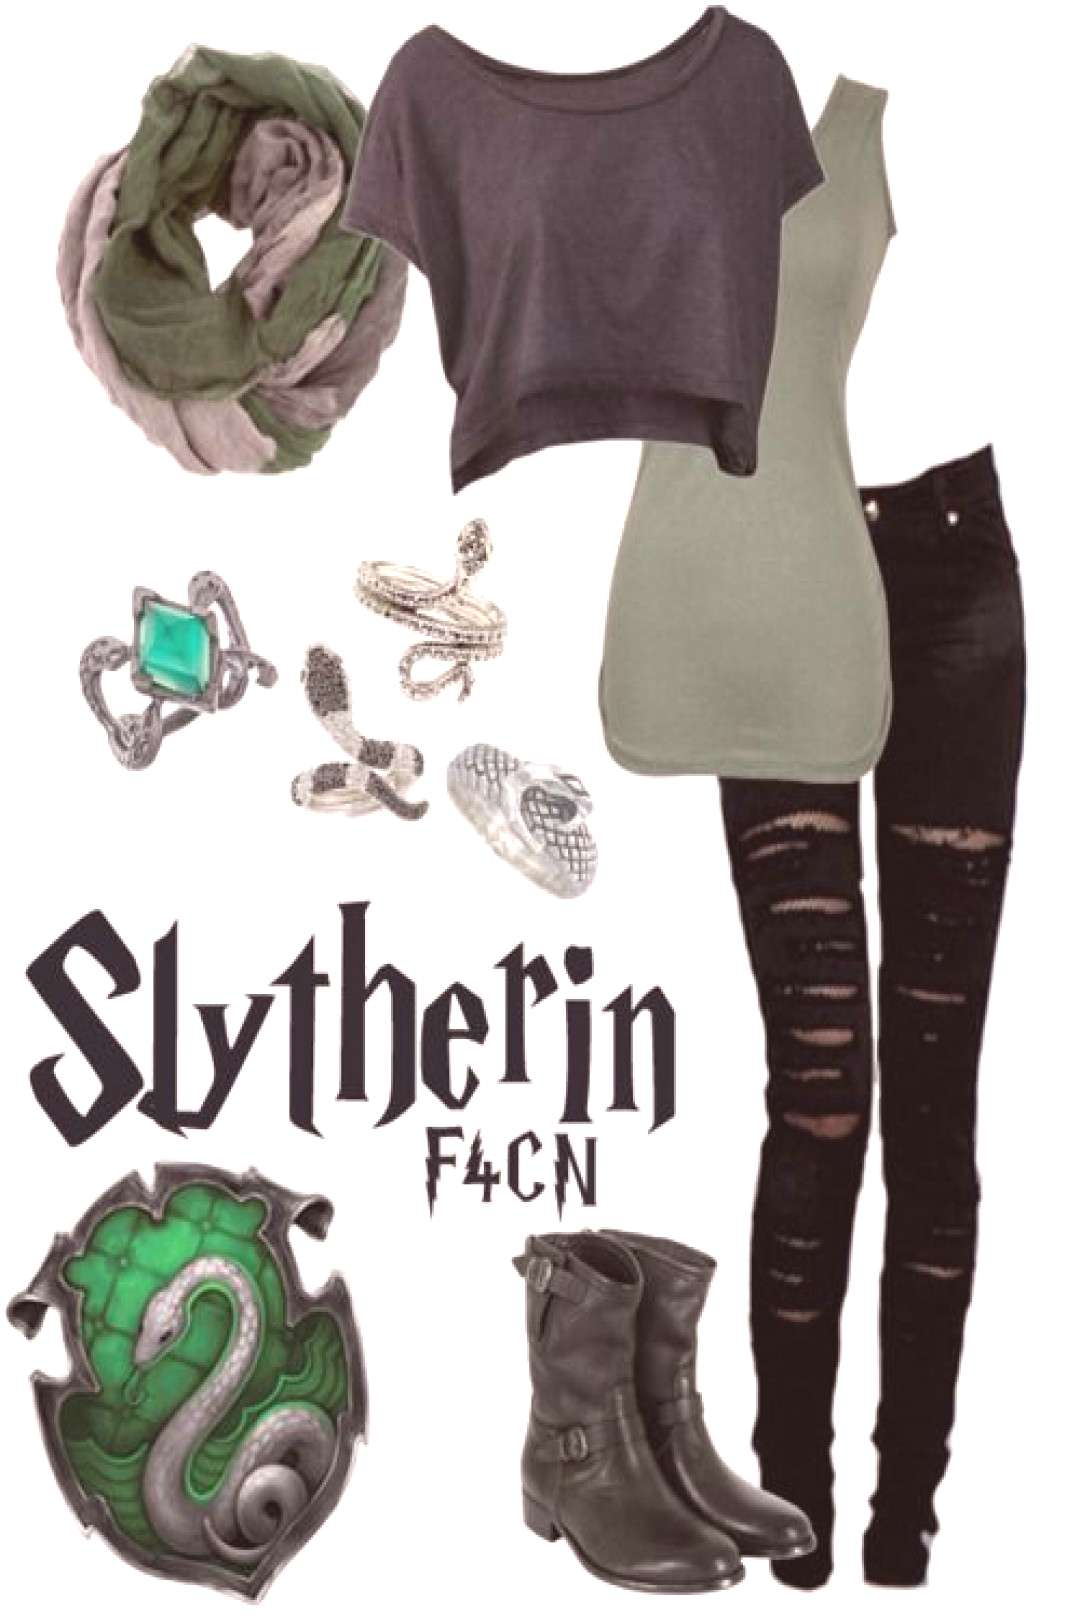 Again here is to Slytherin! however this could be tweaked a little bit in order to work as a Death